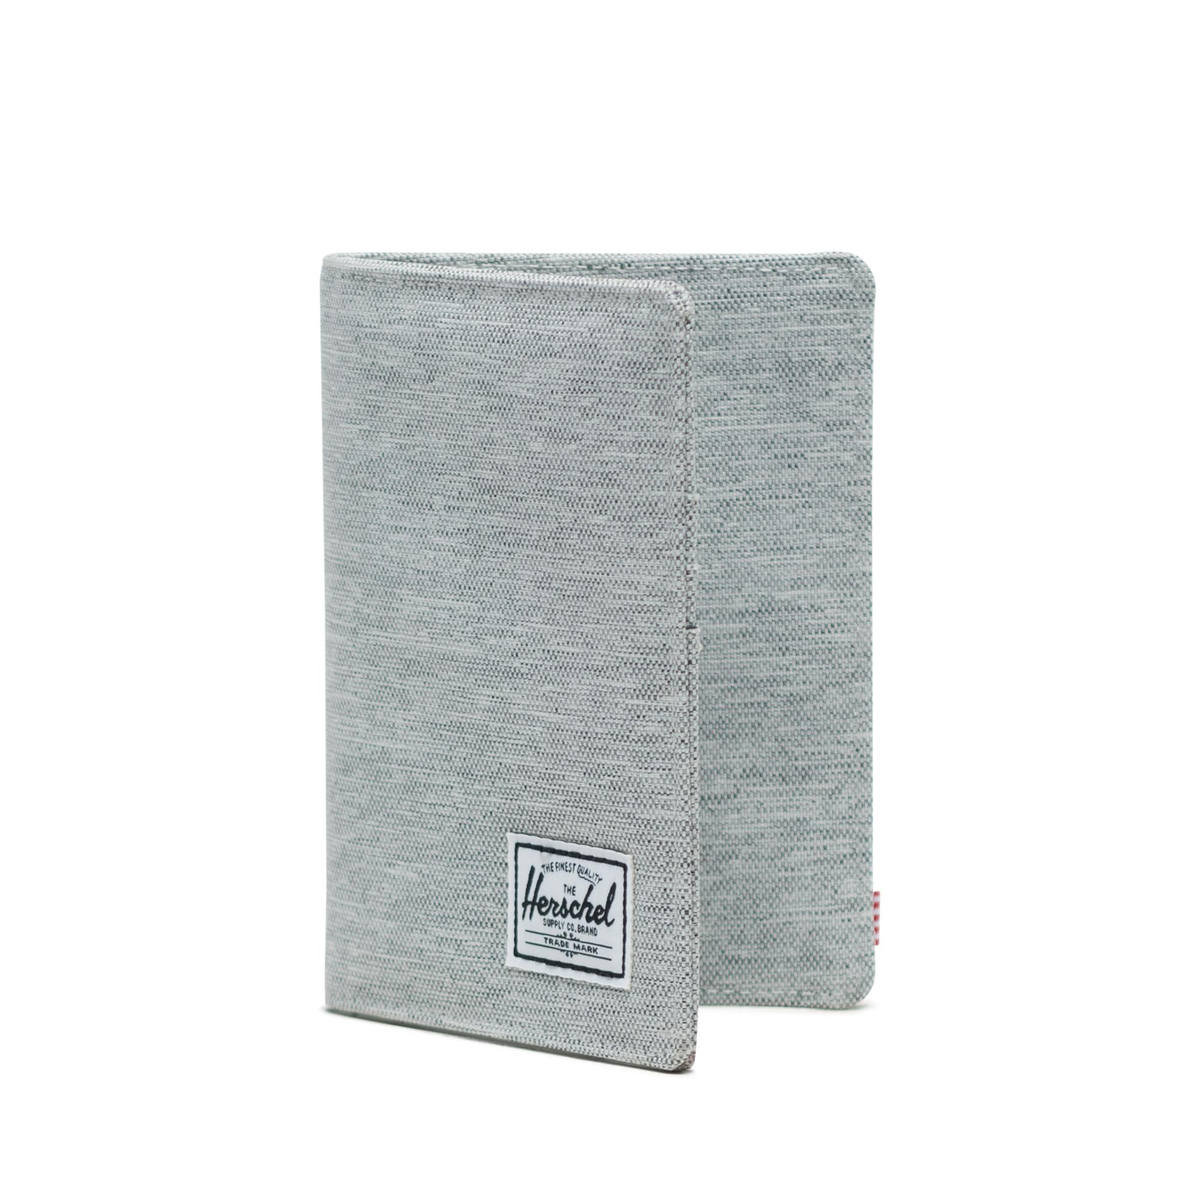 Herschel|Raynor Passport Holder Rfid